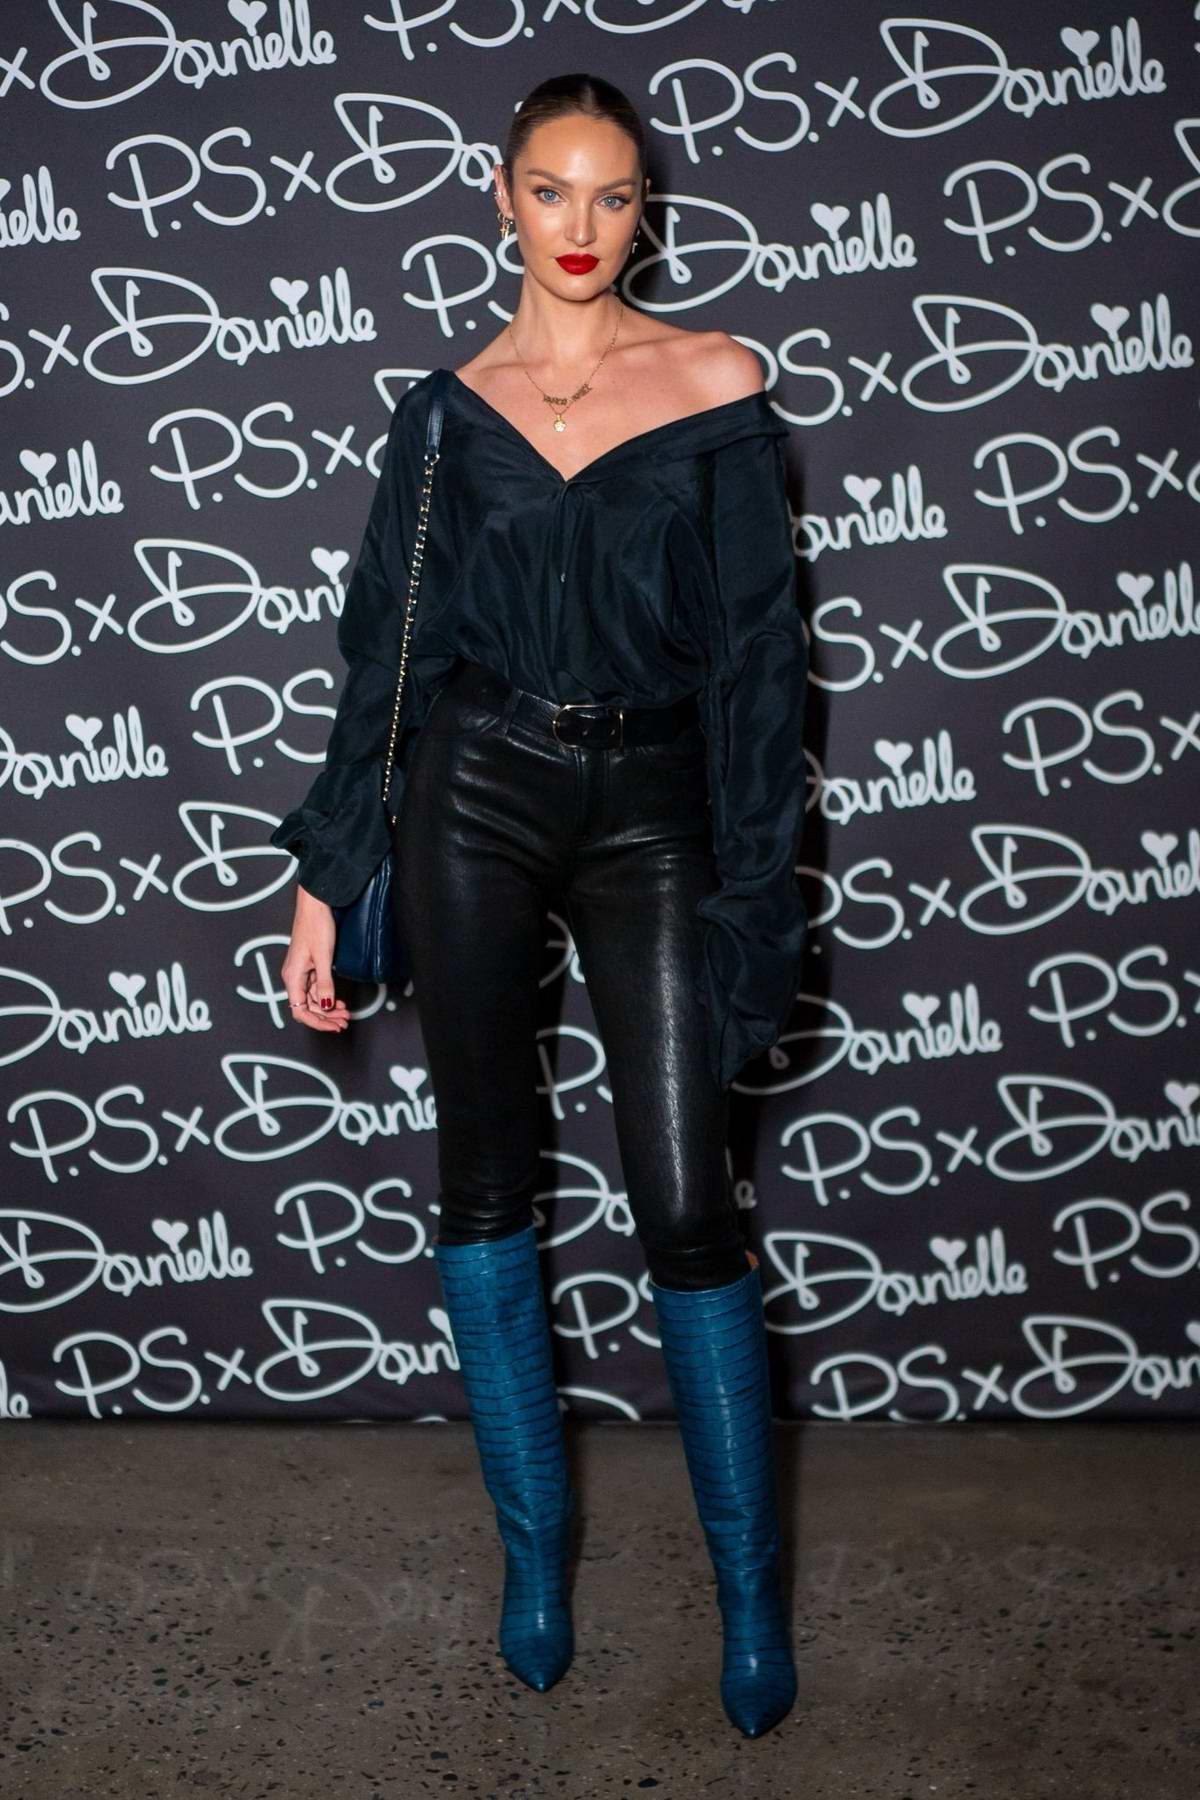 Candice Swanepoel attends PS x Danielle launch by Danielle Priano in New York City